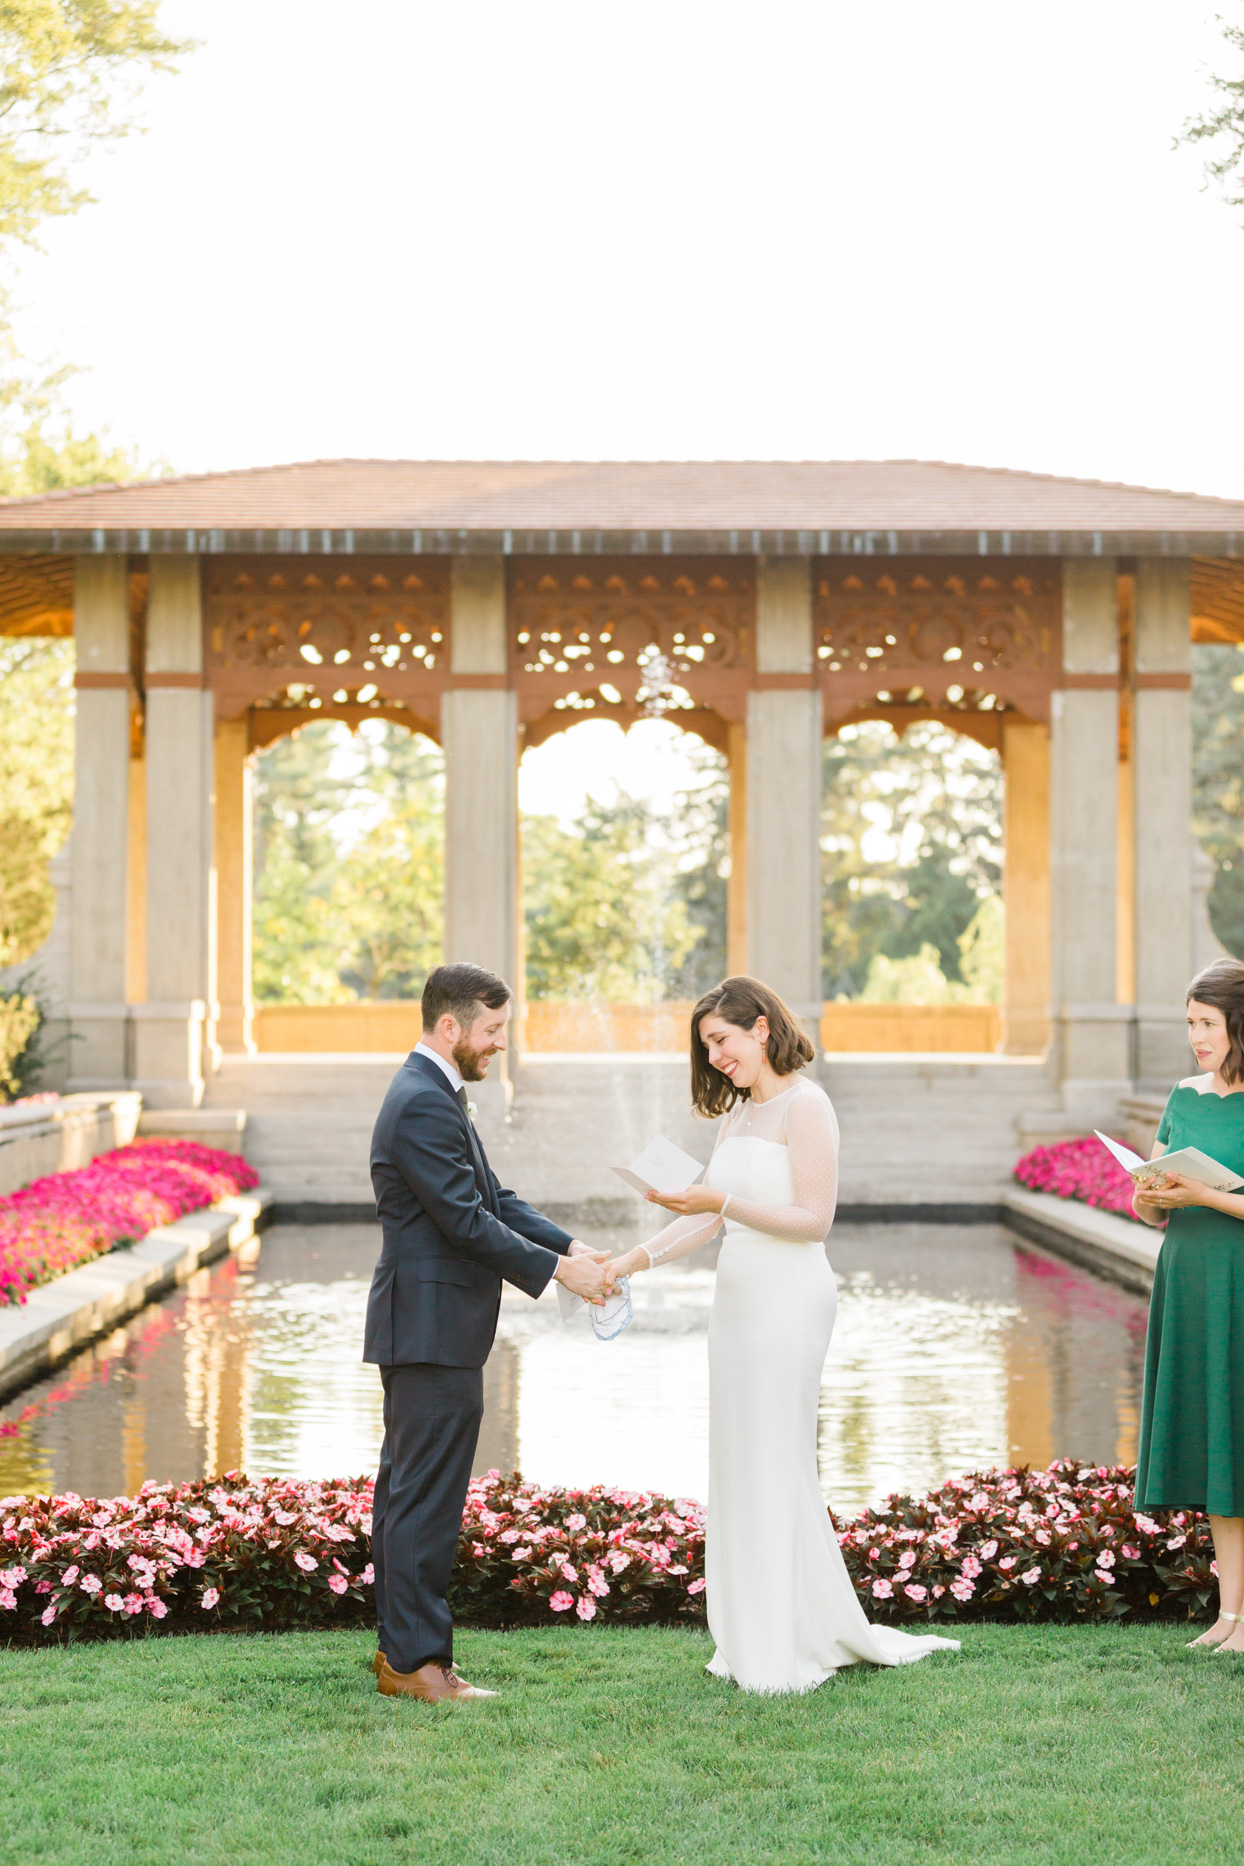 bride and groom exchanging vows in front of garden pond